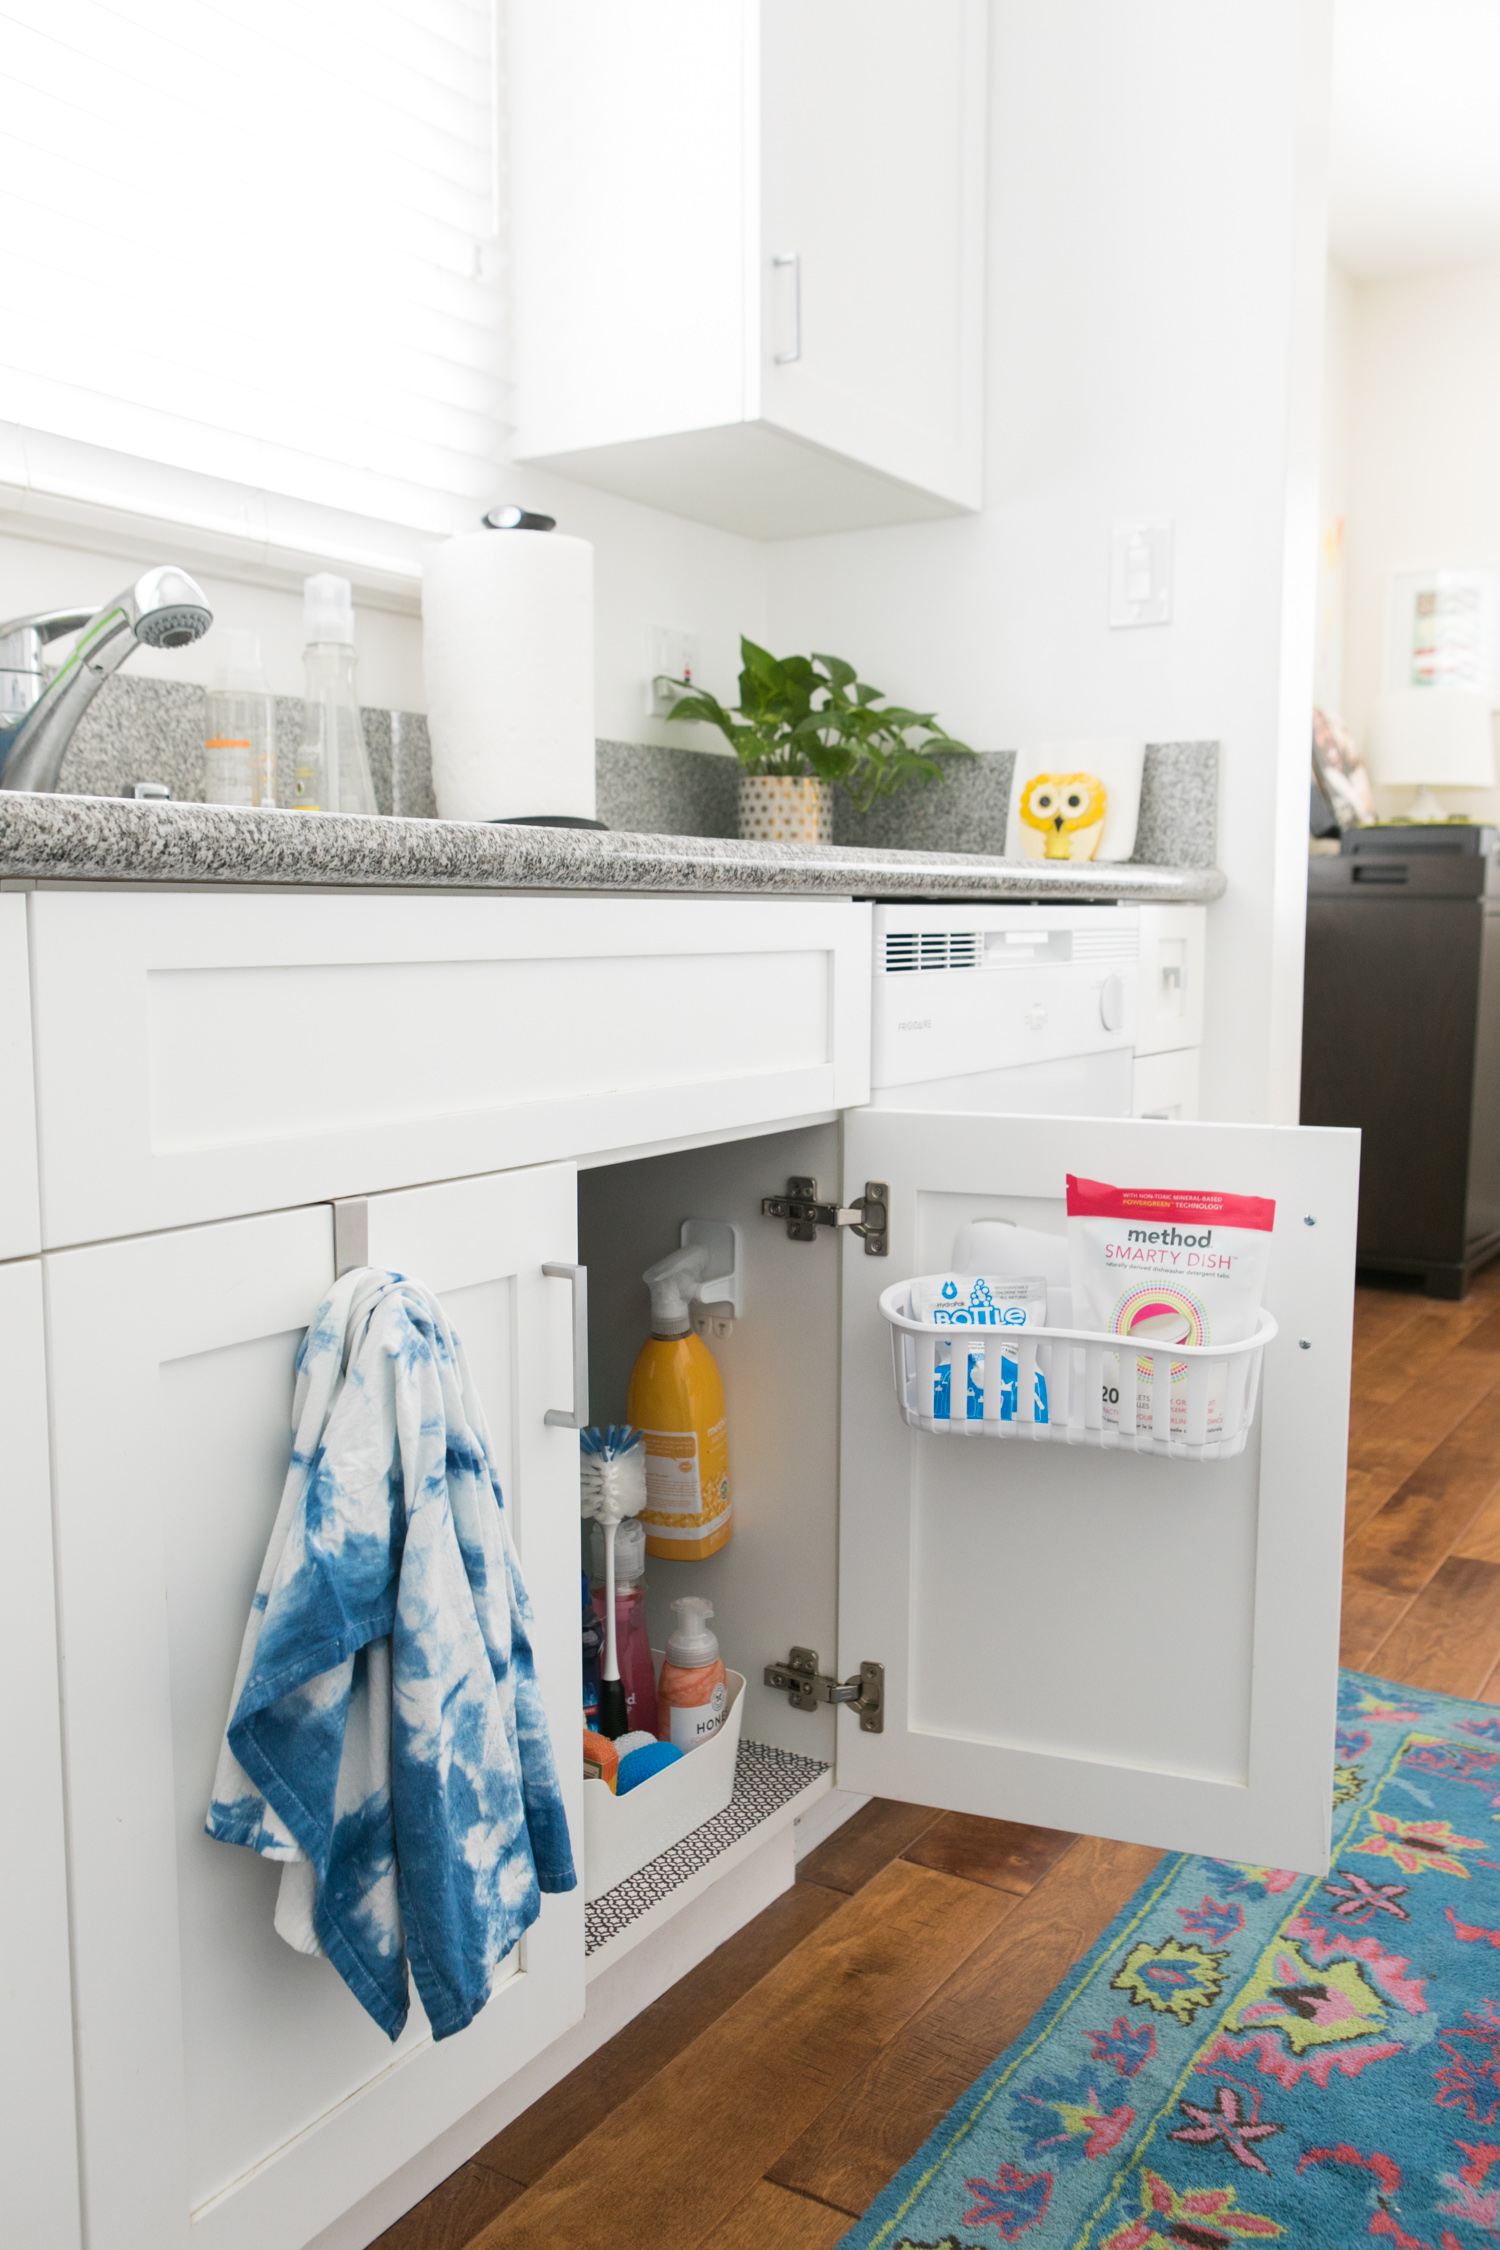 How to Organize Under the Kitchen Sink - Sarah Hearts